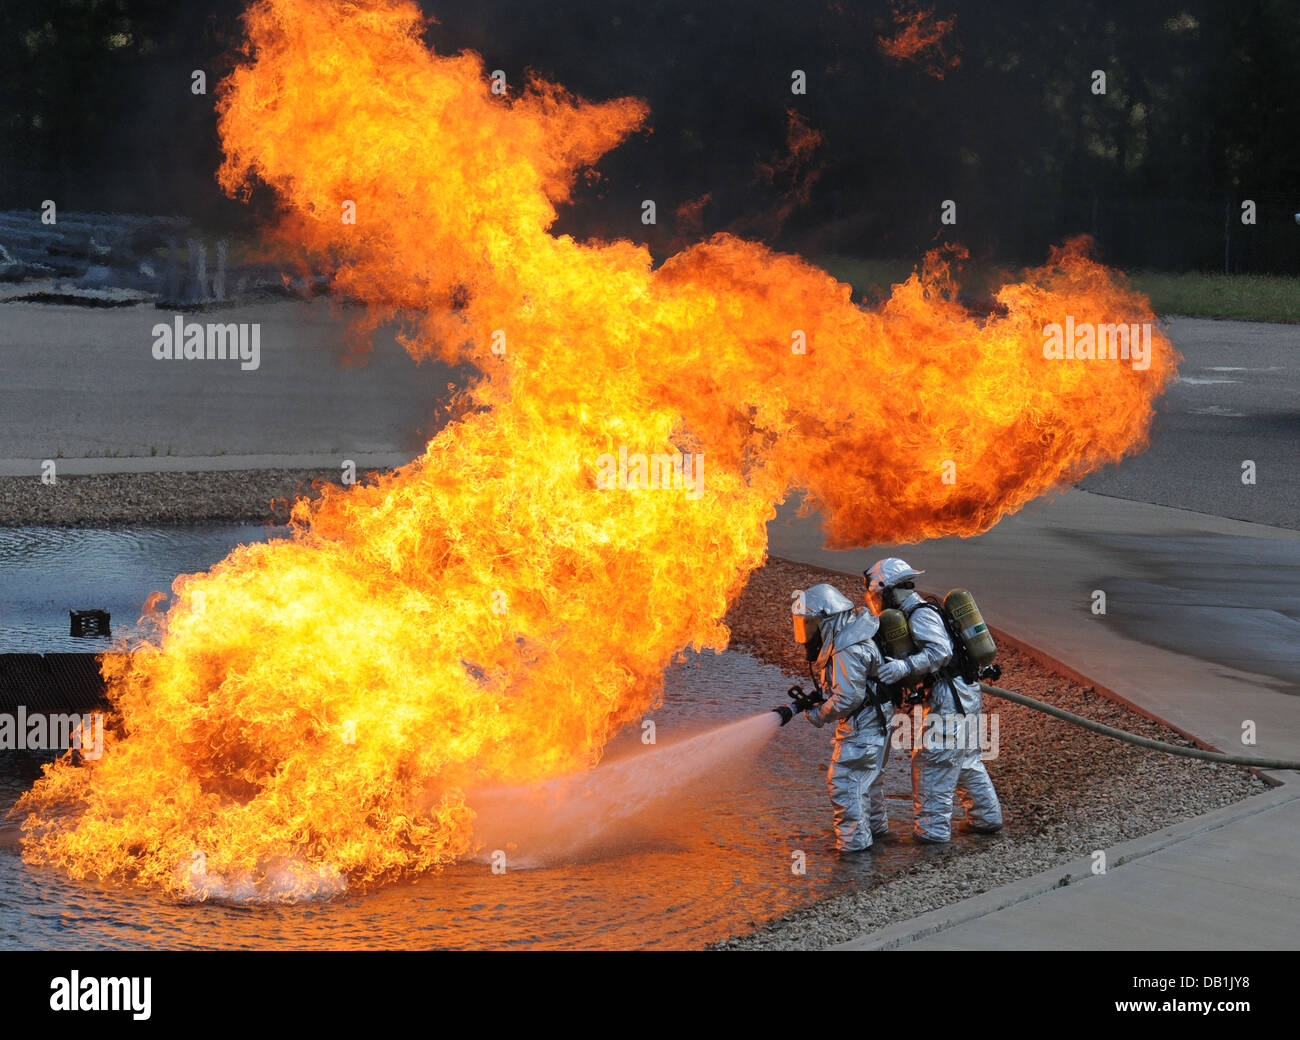 Air National Guard firefighters work to extinguish a plane fire during a training exercise at Volk Field, Wis., - Stock Image